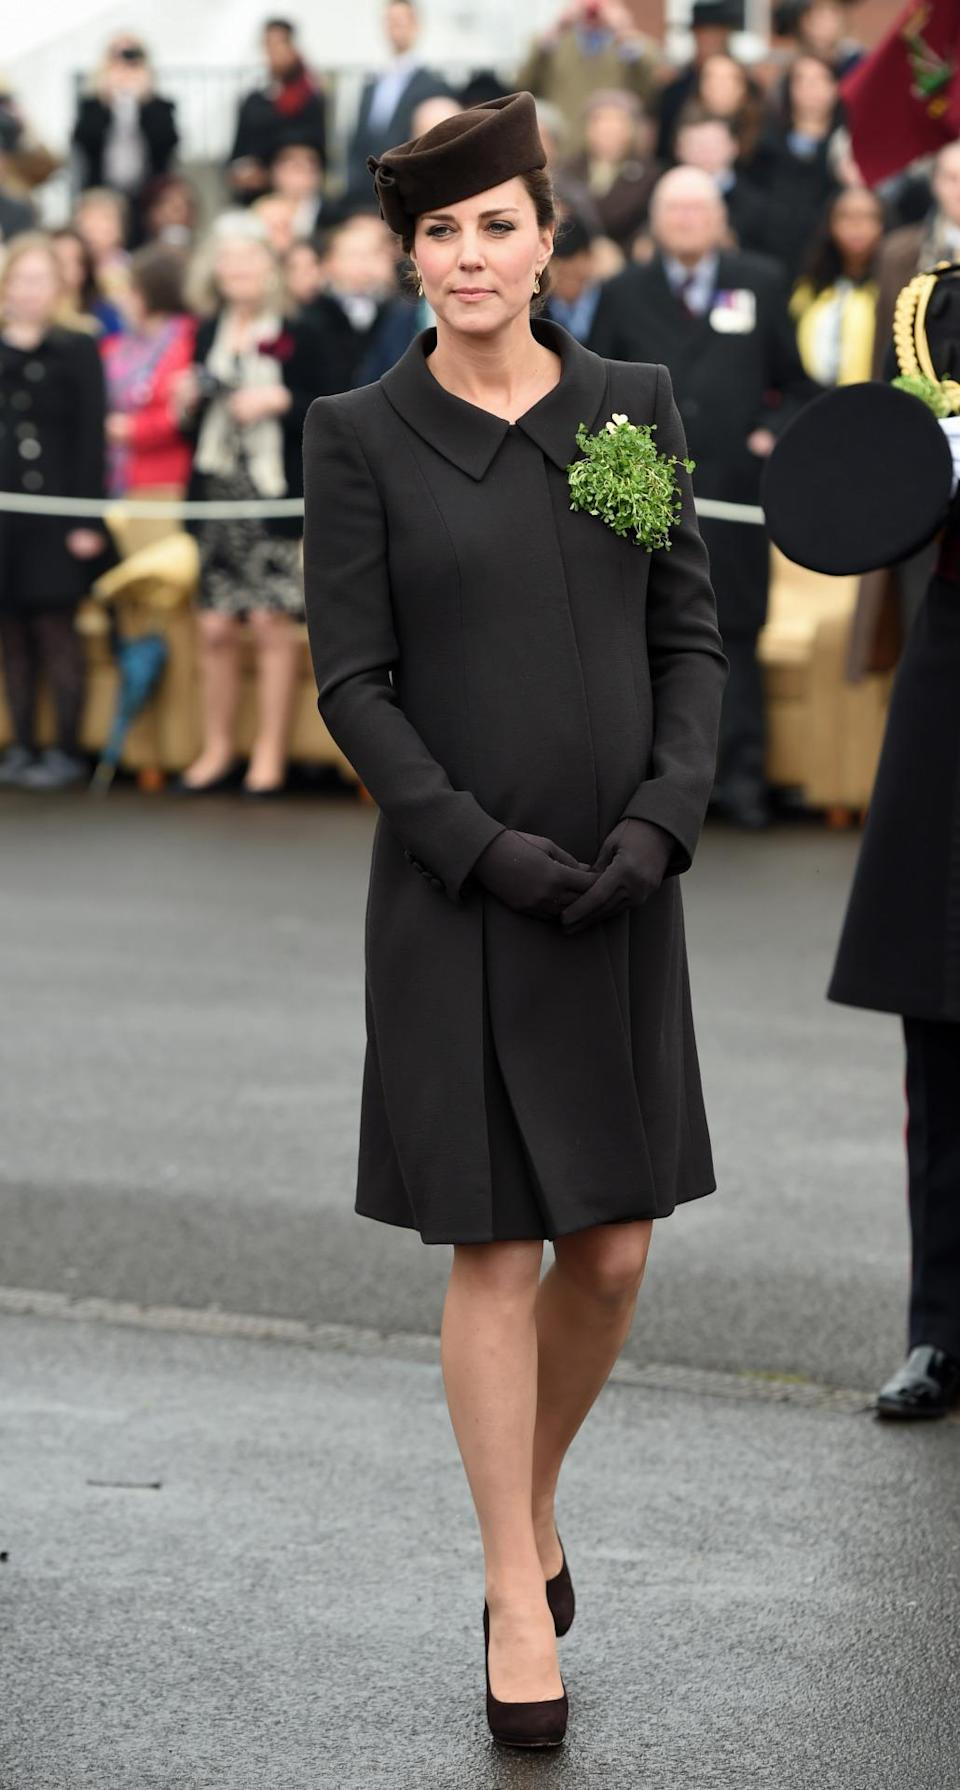 <p>Catherine Walker designed Kate's brown coat for the annual St. Patrick's Day parade. The Duchess accessorised with chocolate brown heels and bag by Emmy London and a matching Lock & Co hat.</p><p><i>[Photo: PA]</i></p>